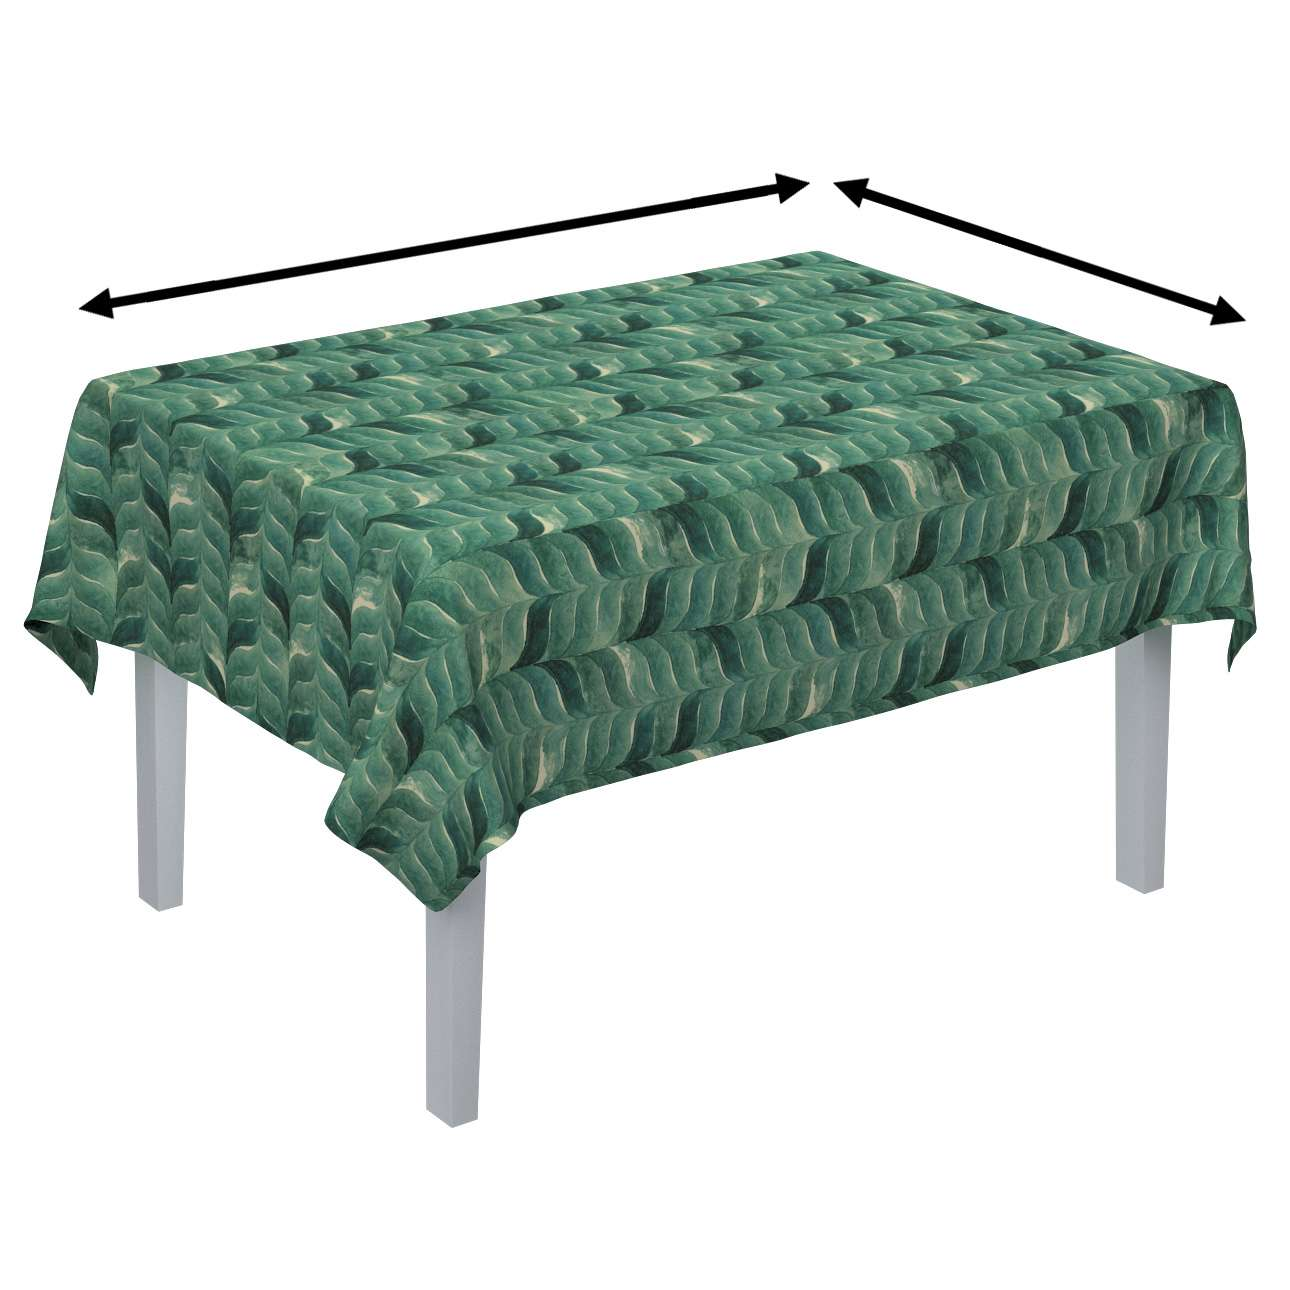 Rectangular tablecloth in collection Abigail, fabric: 143-16